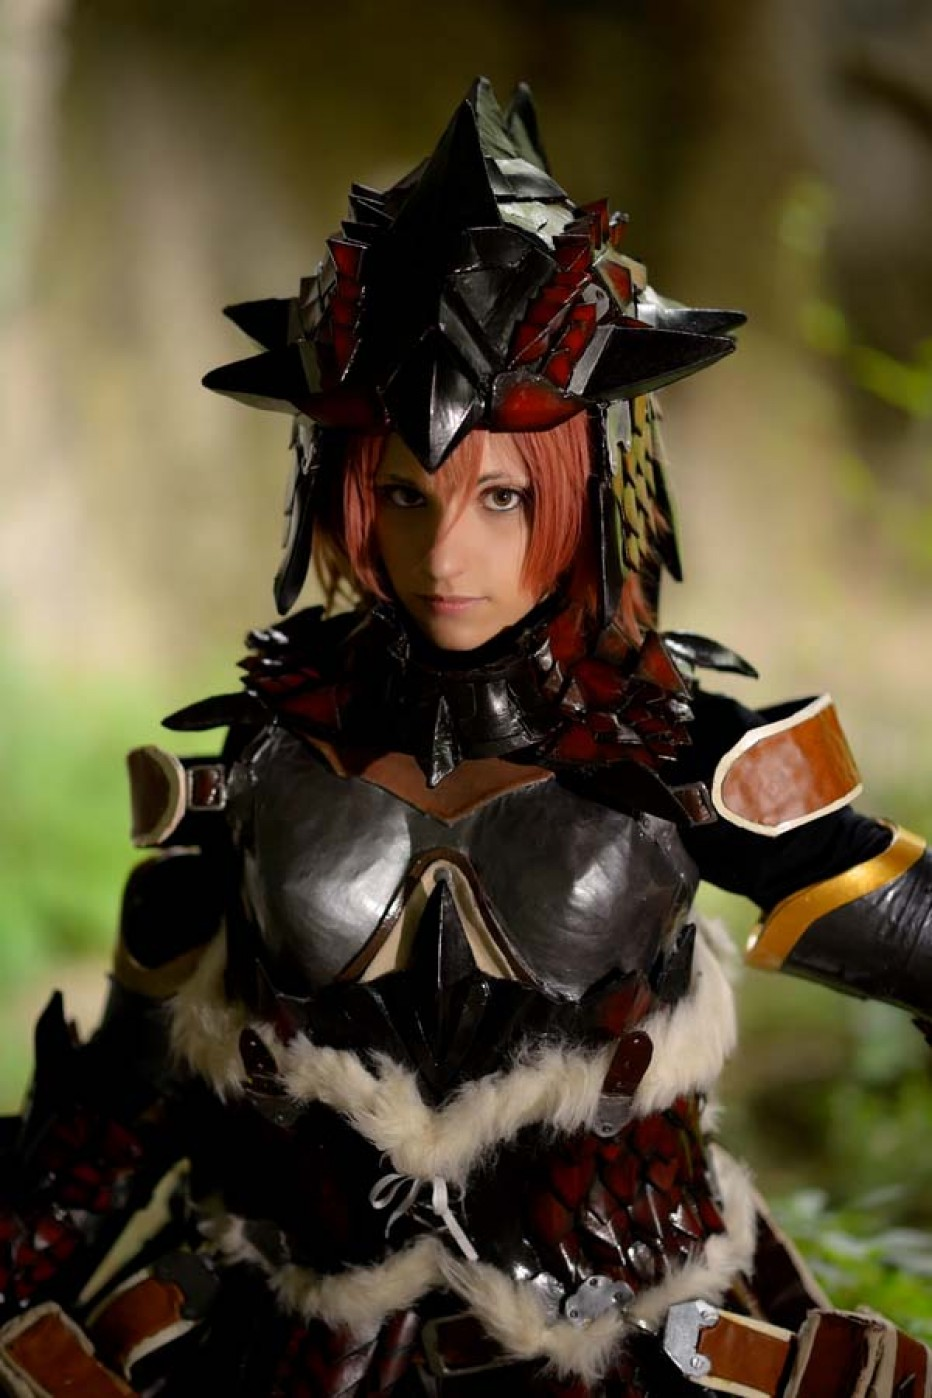 monster_hunter_cosplay_by_kickacosplay-d6ors91.jpg